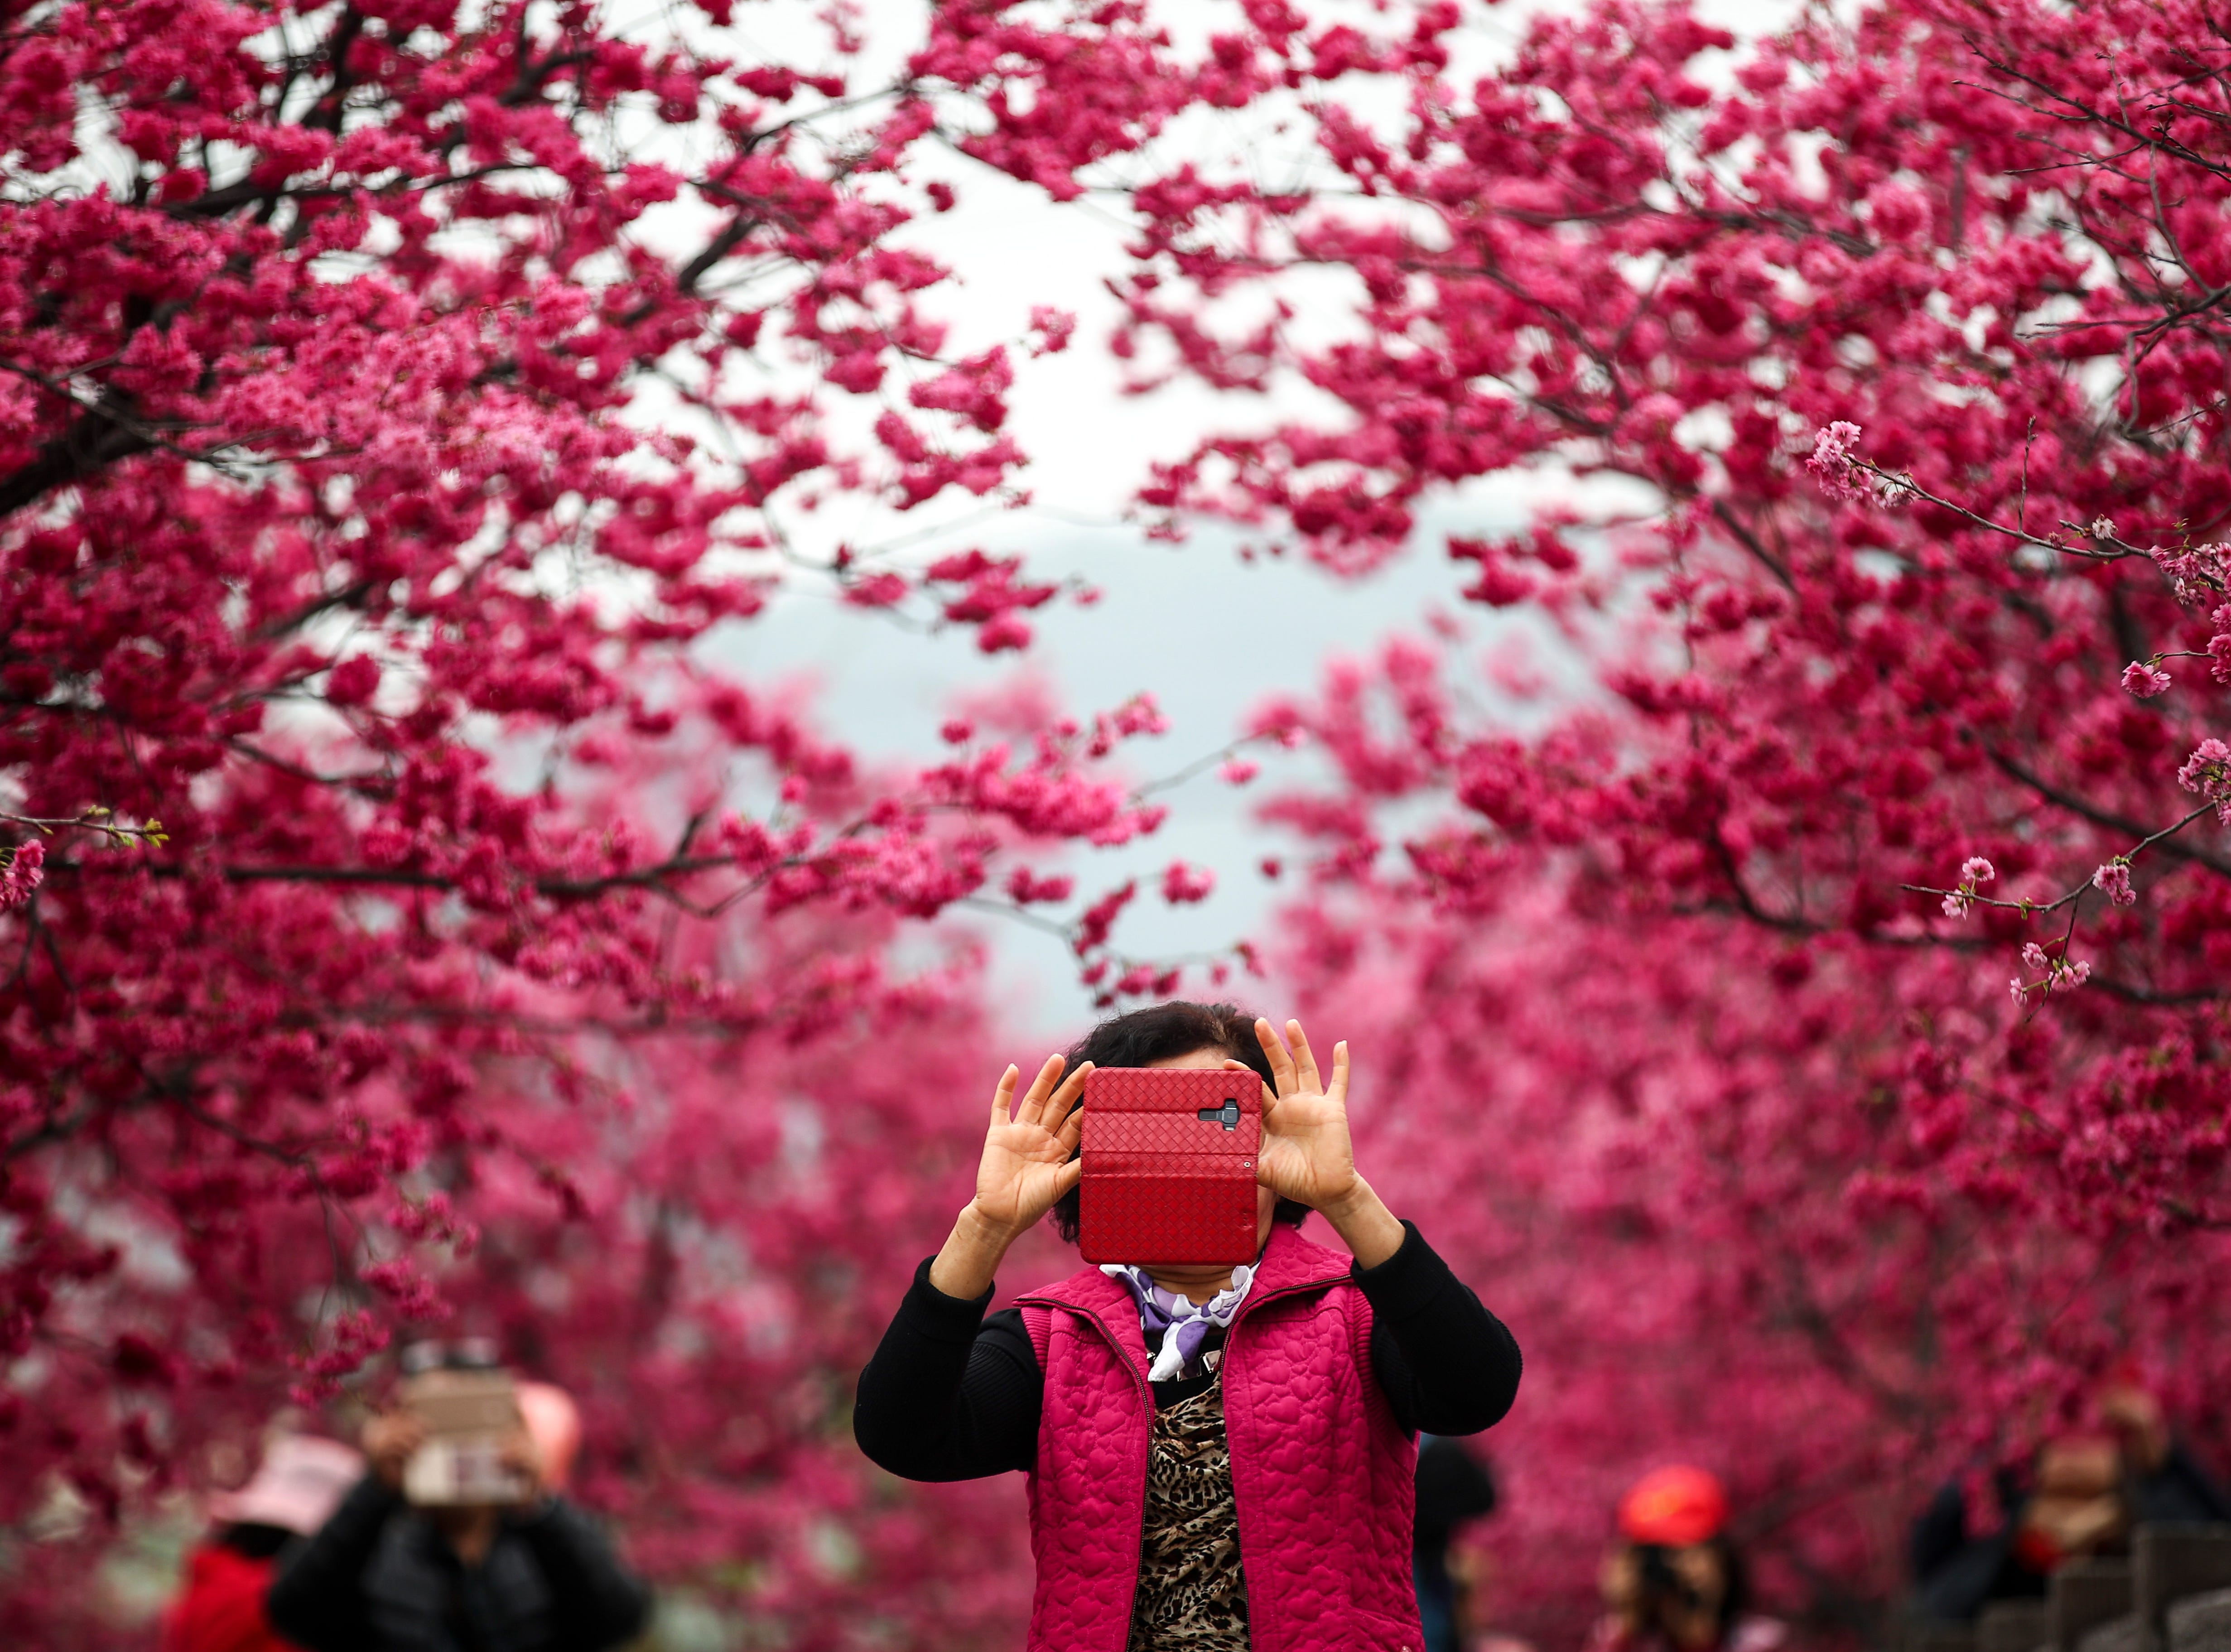 Feb. 27, 2018: A visitor takes a photo under cherry blossoms in Taichung, Taiwan.